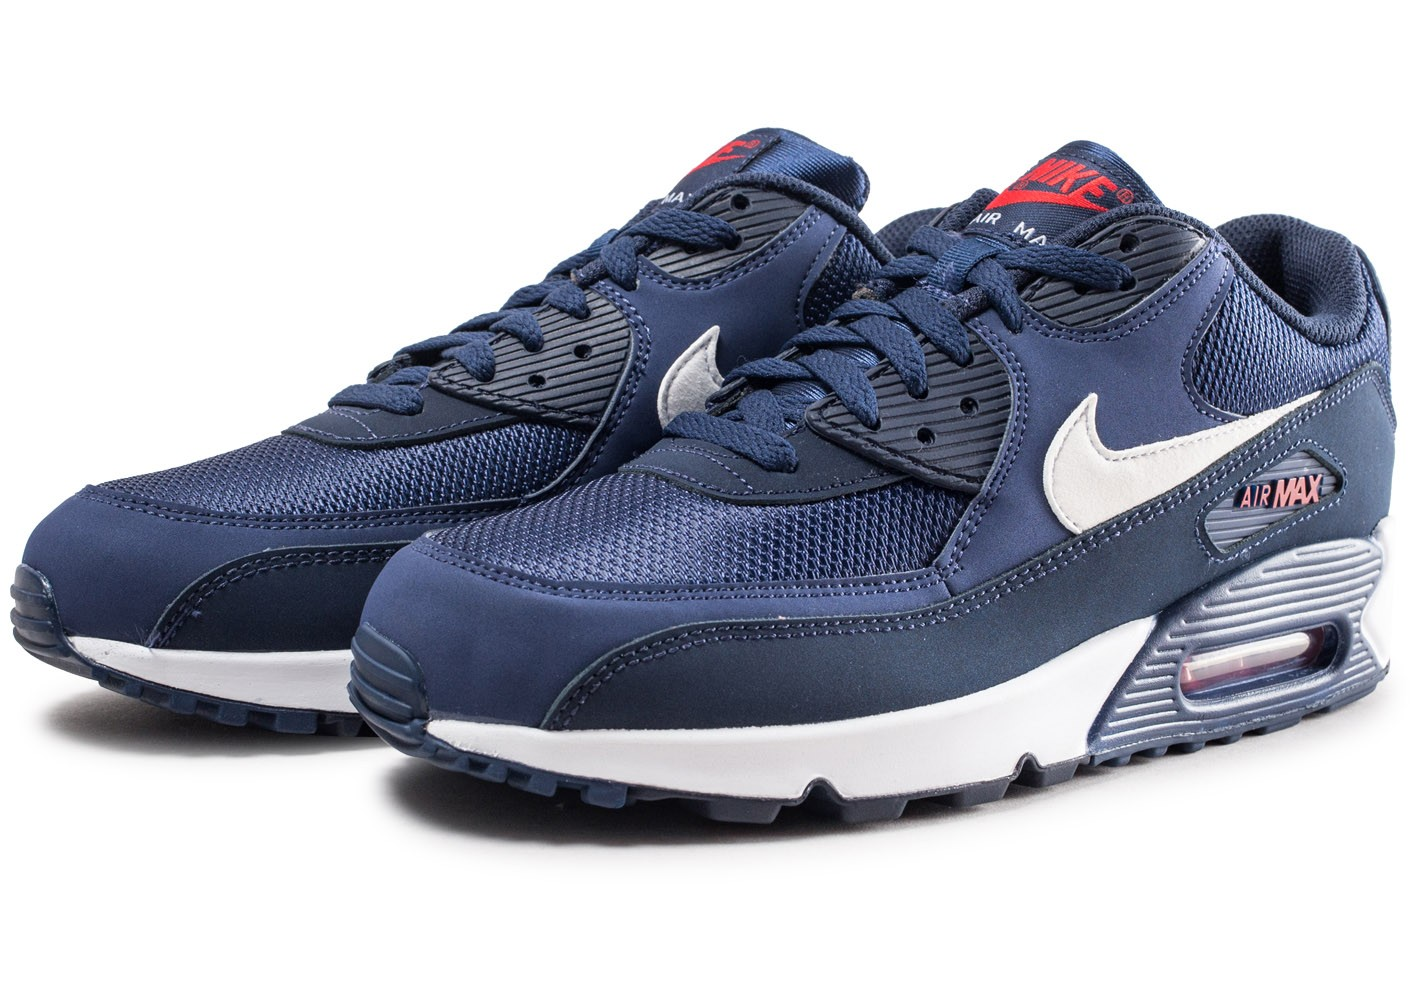 competitive price 4377b 167f5 ... Chaussures Nike Air Max 90 Essential bleue et blanche vue intérieure ...